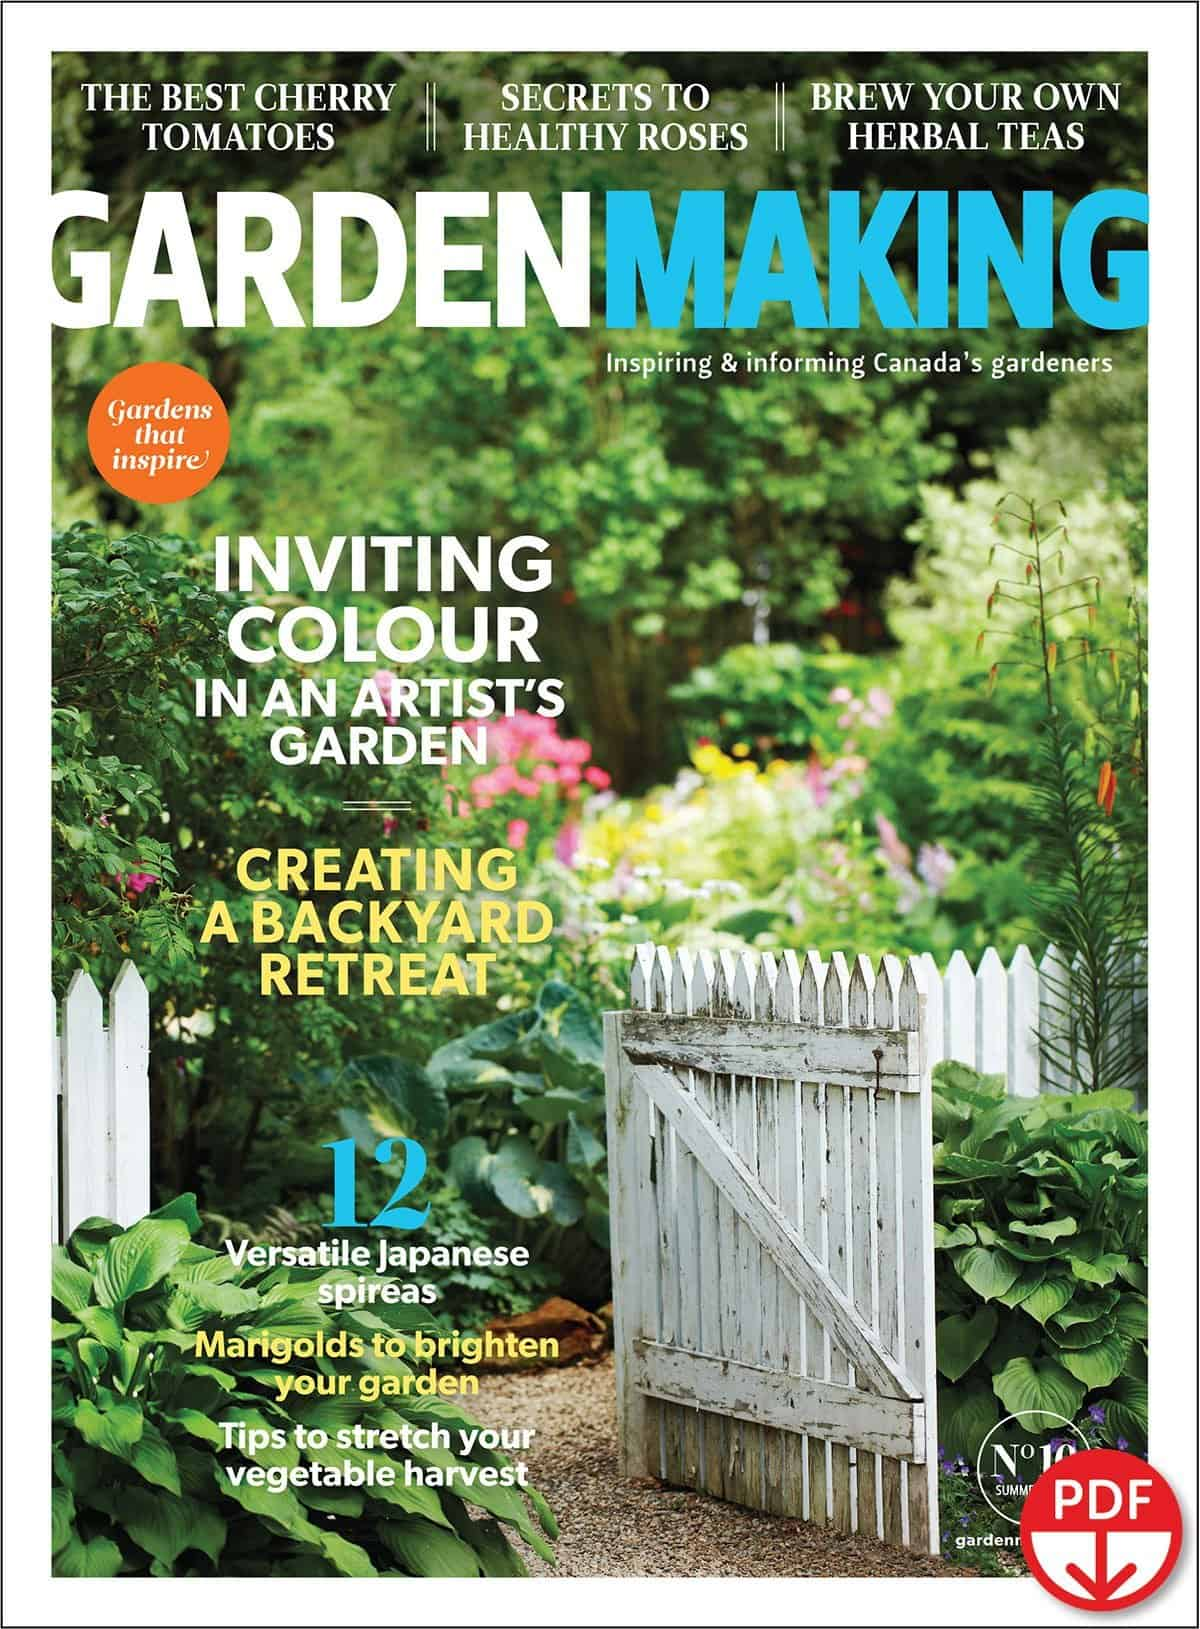 The garden profiles with informative interviews and gorgeous photos will inspire your own garden making: